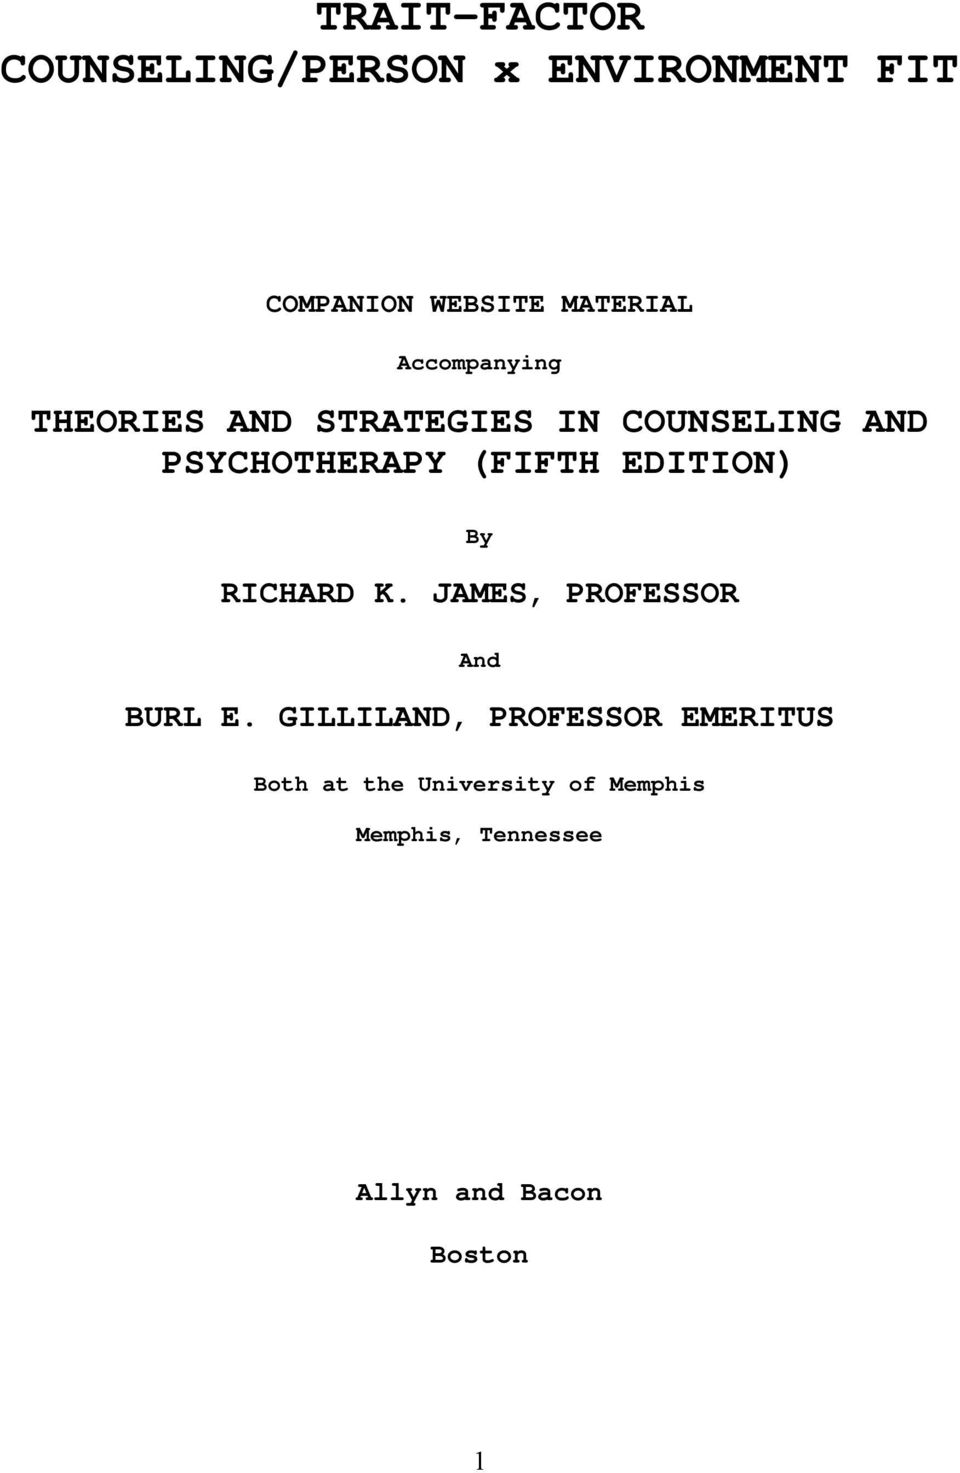 EDITION) By RICHARD K. JAMES, PROFESSOR And BURL E.